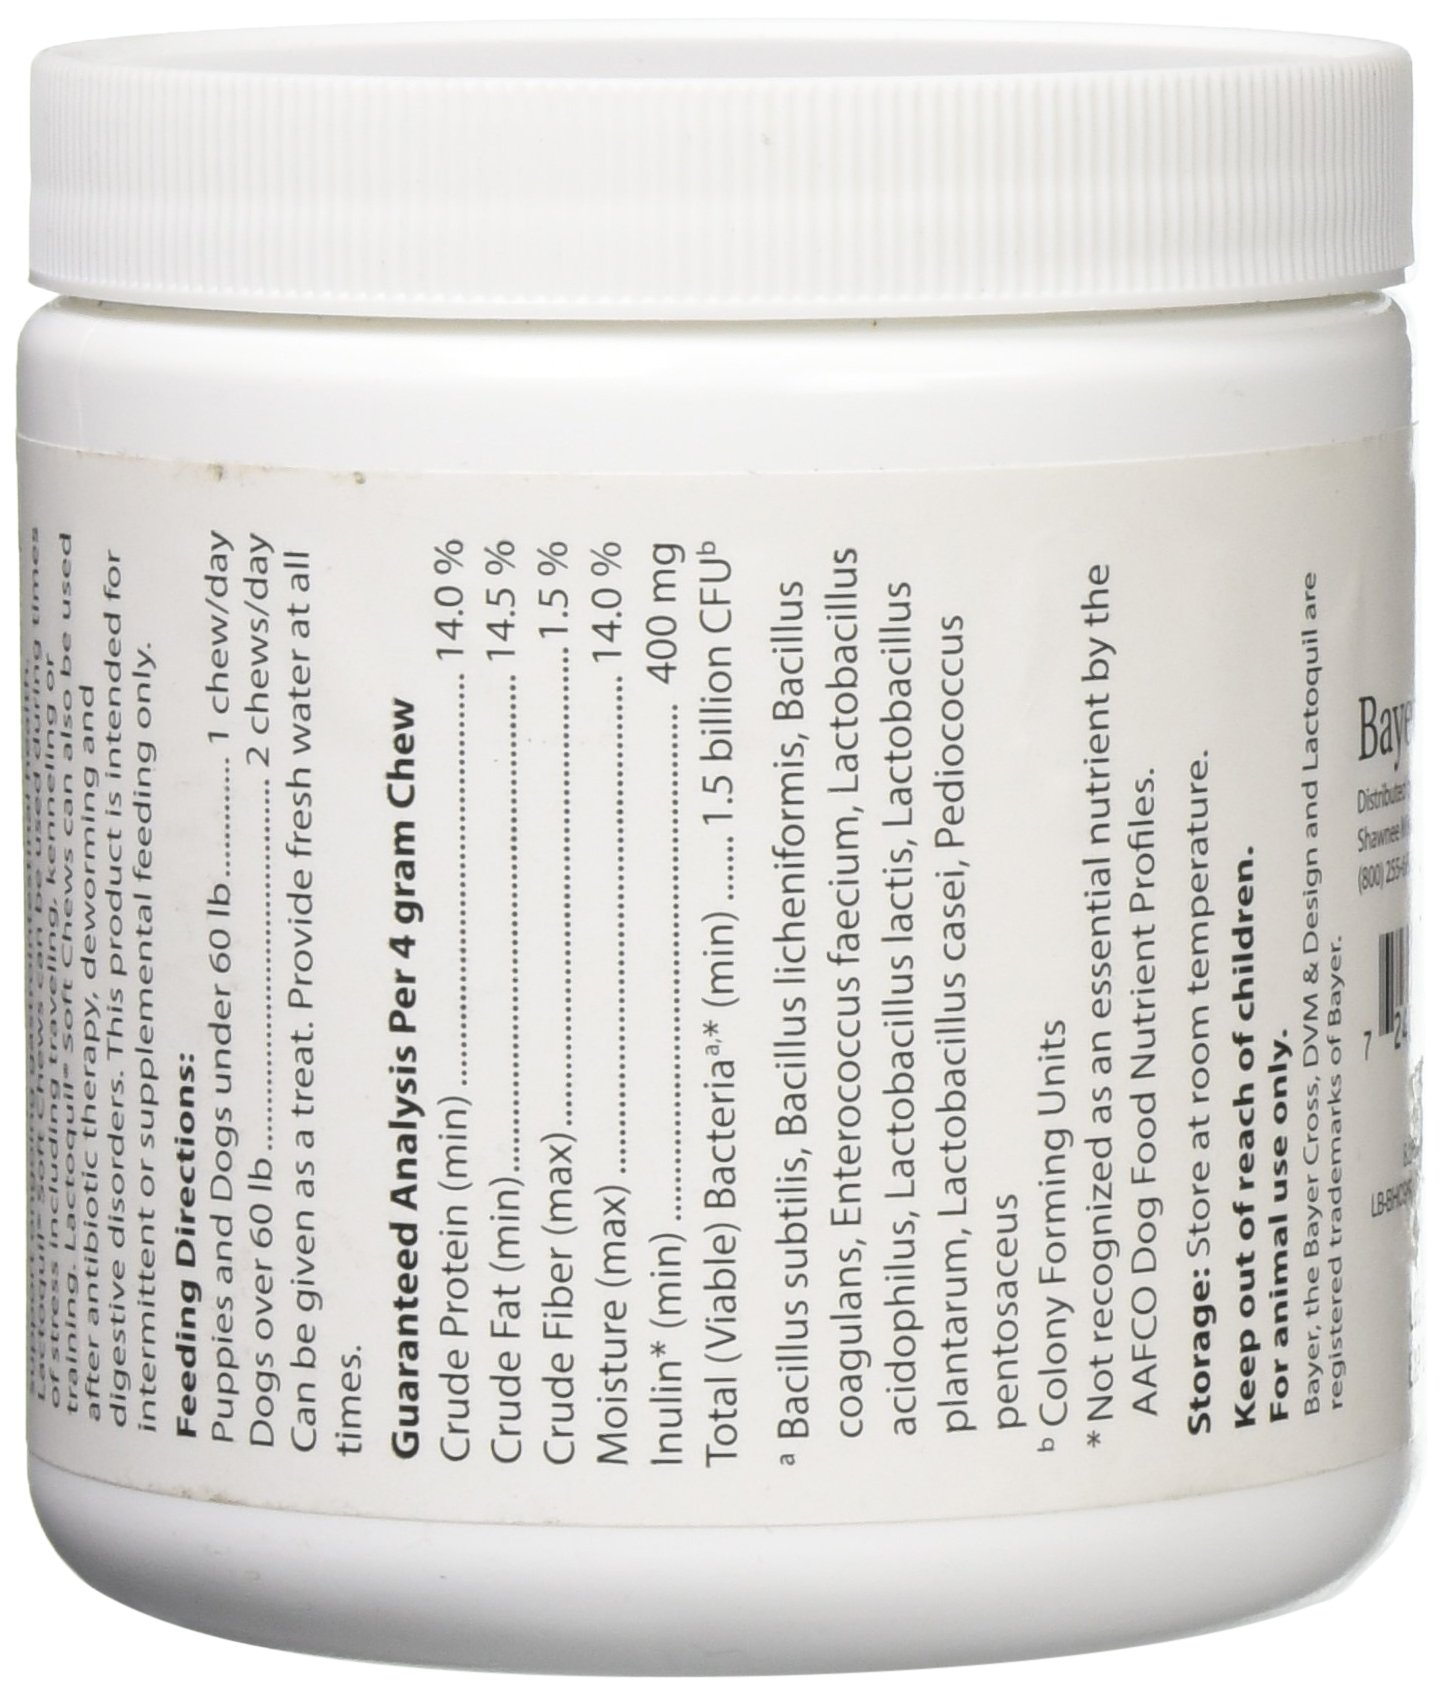 Bayer Lactoquil Soft Chews, Daily Digestive Probiotic Supplement, contains naturally derived ingredients for dogs of all ages, sizes and breeds, 75ct by Bayer Animal Health (Image #4)